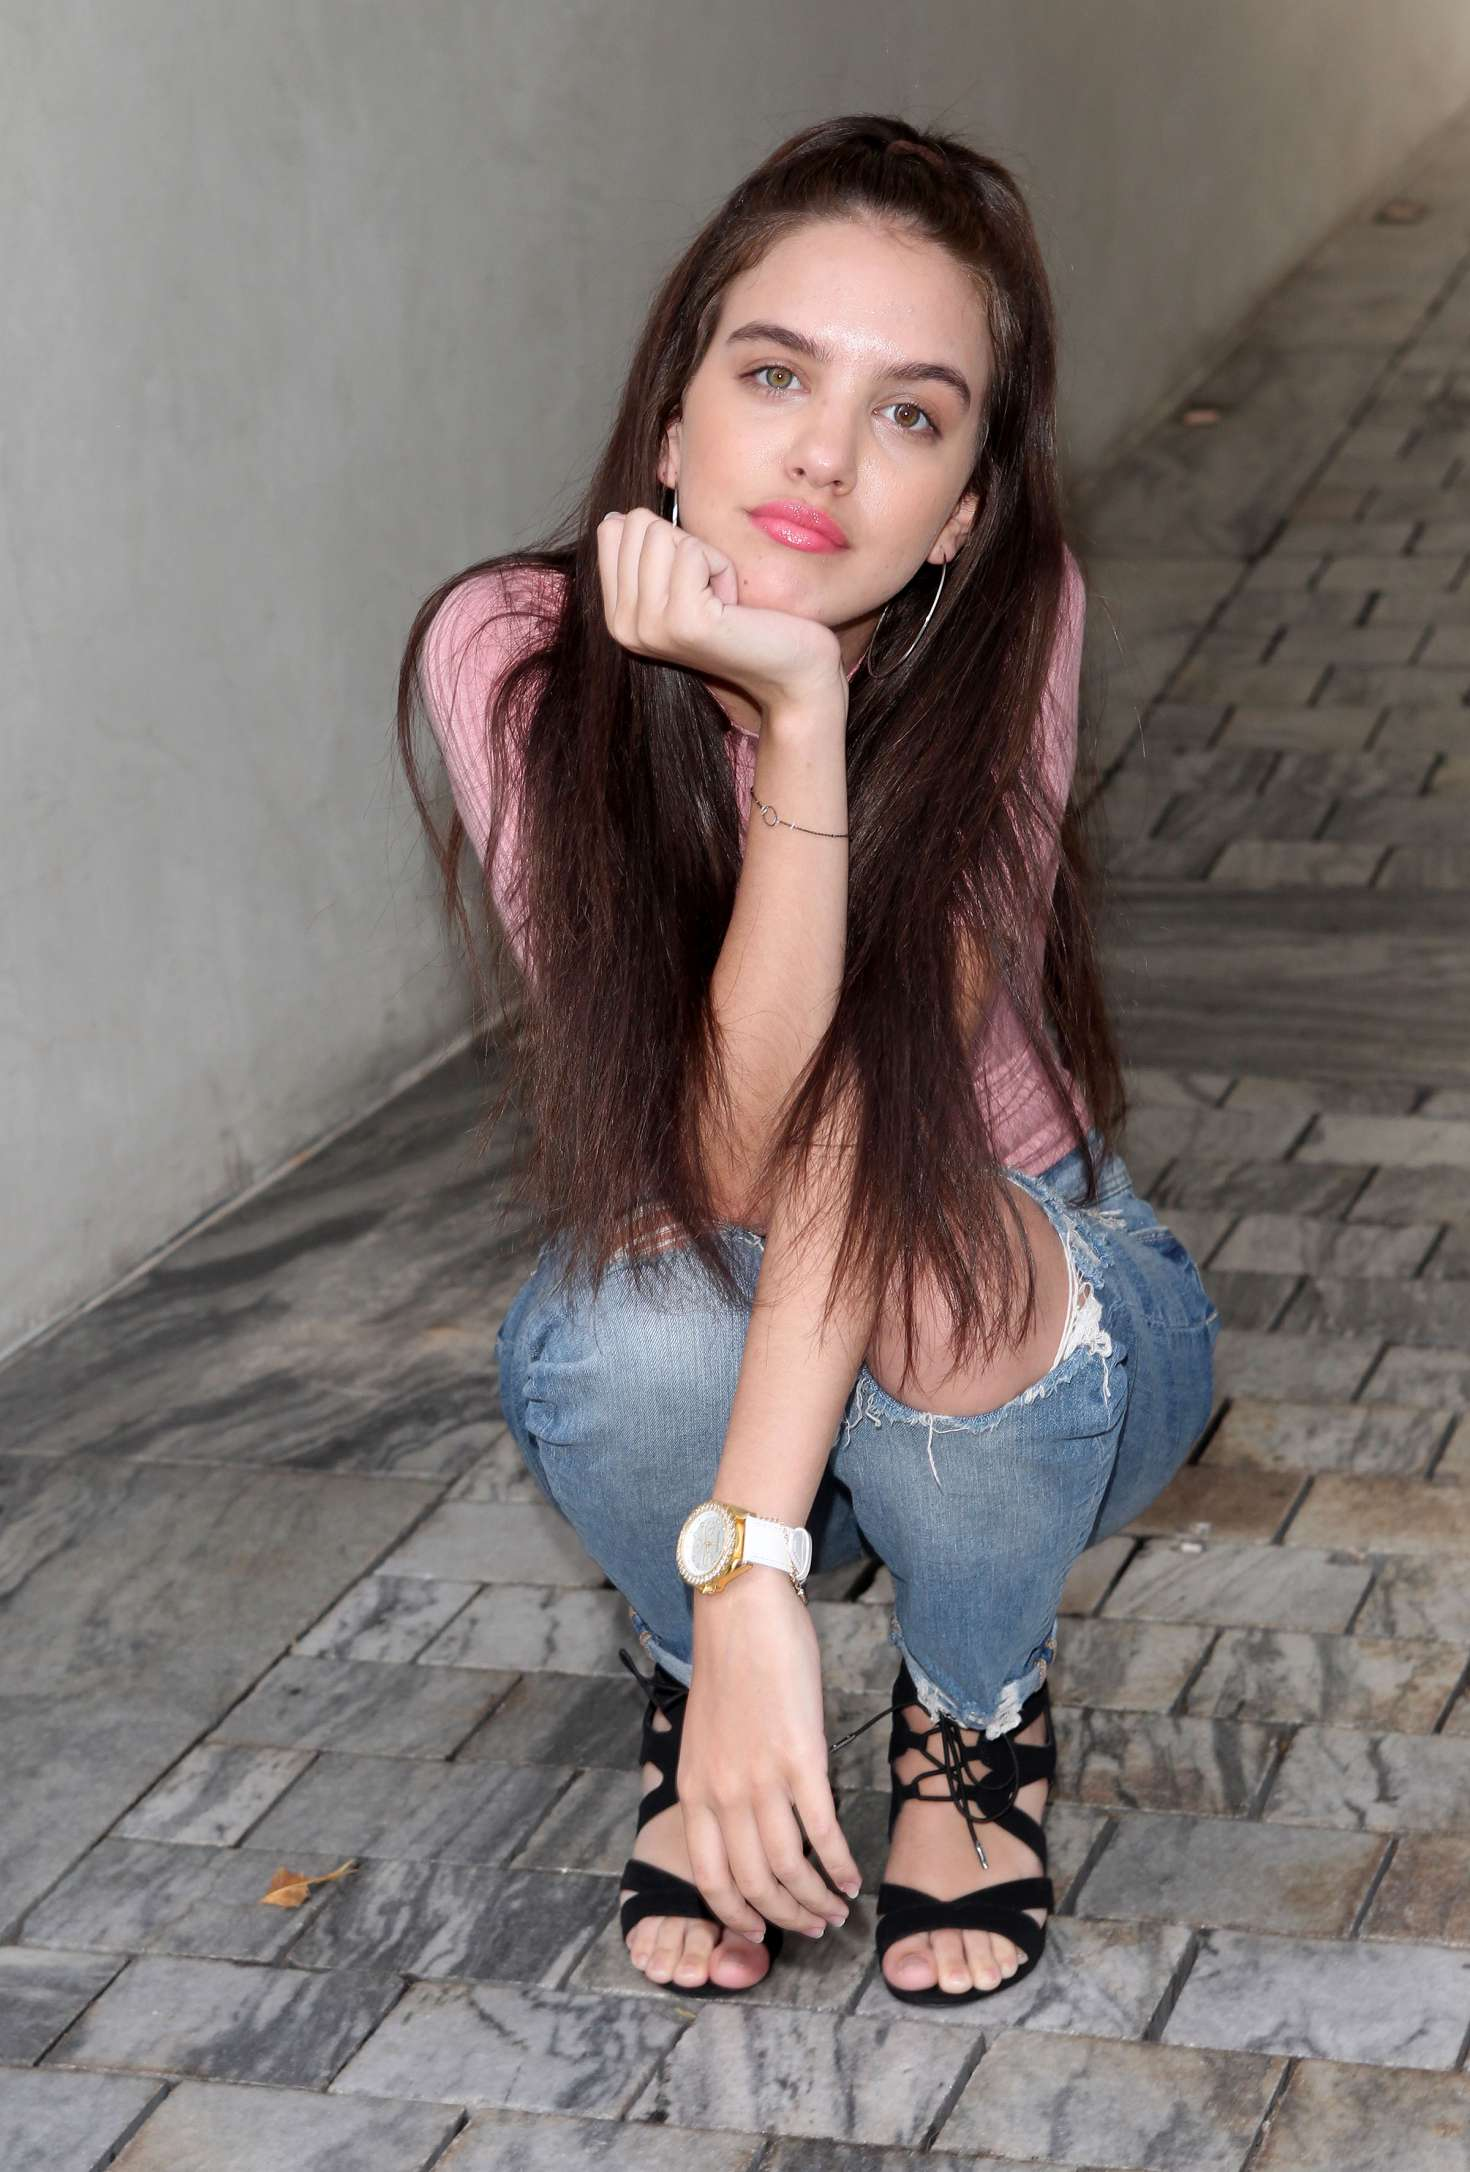 los lunas muslim dating site Free arab dating sites online dating permits you to create the love life you want to live you can link with your soulmate, find a compatible long-term relationship.